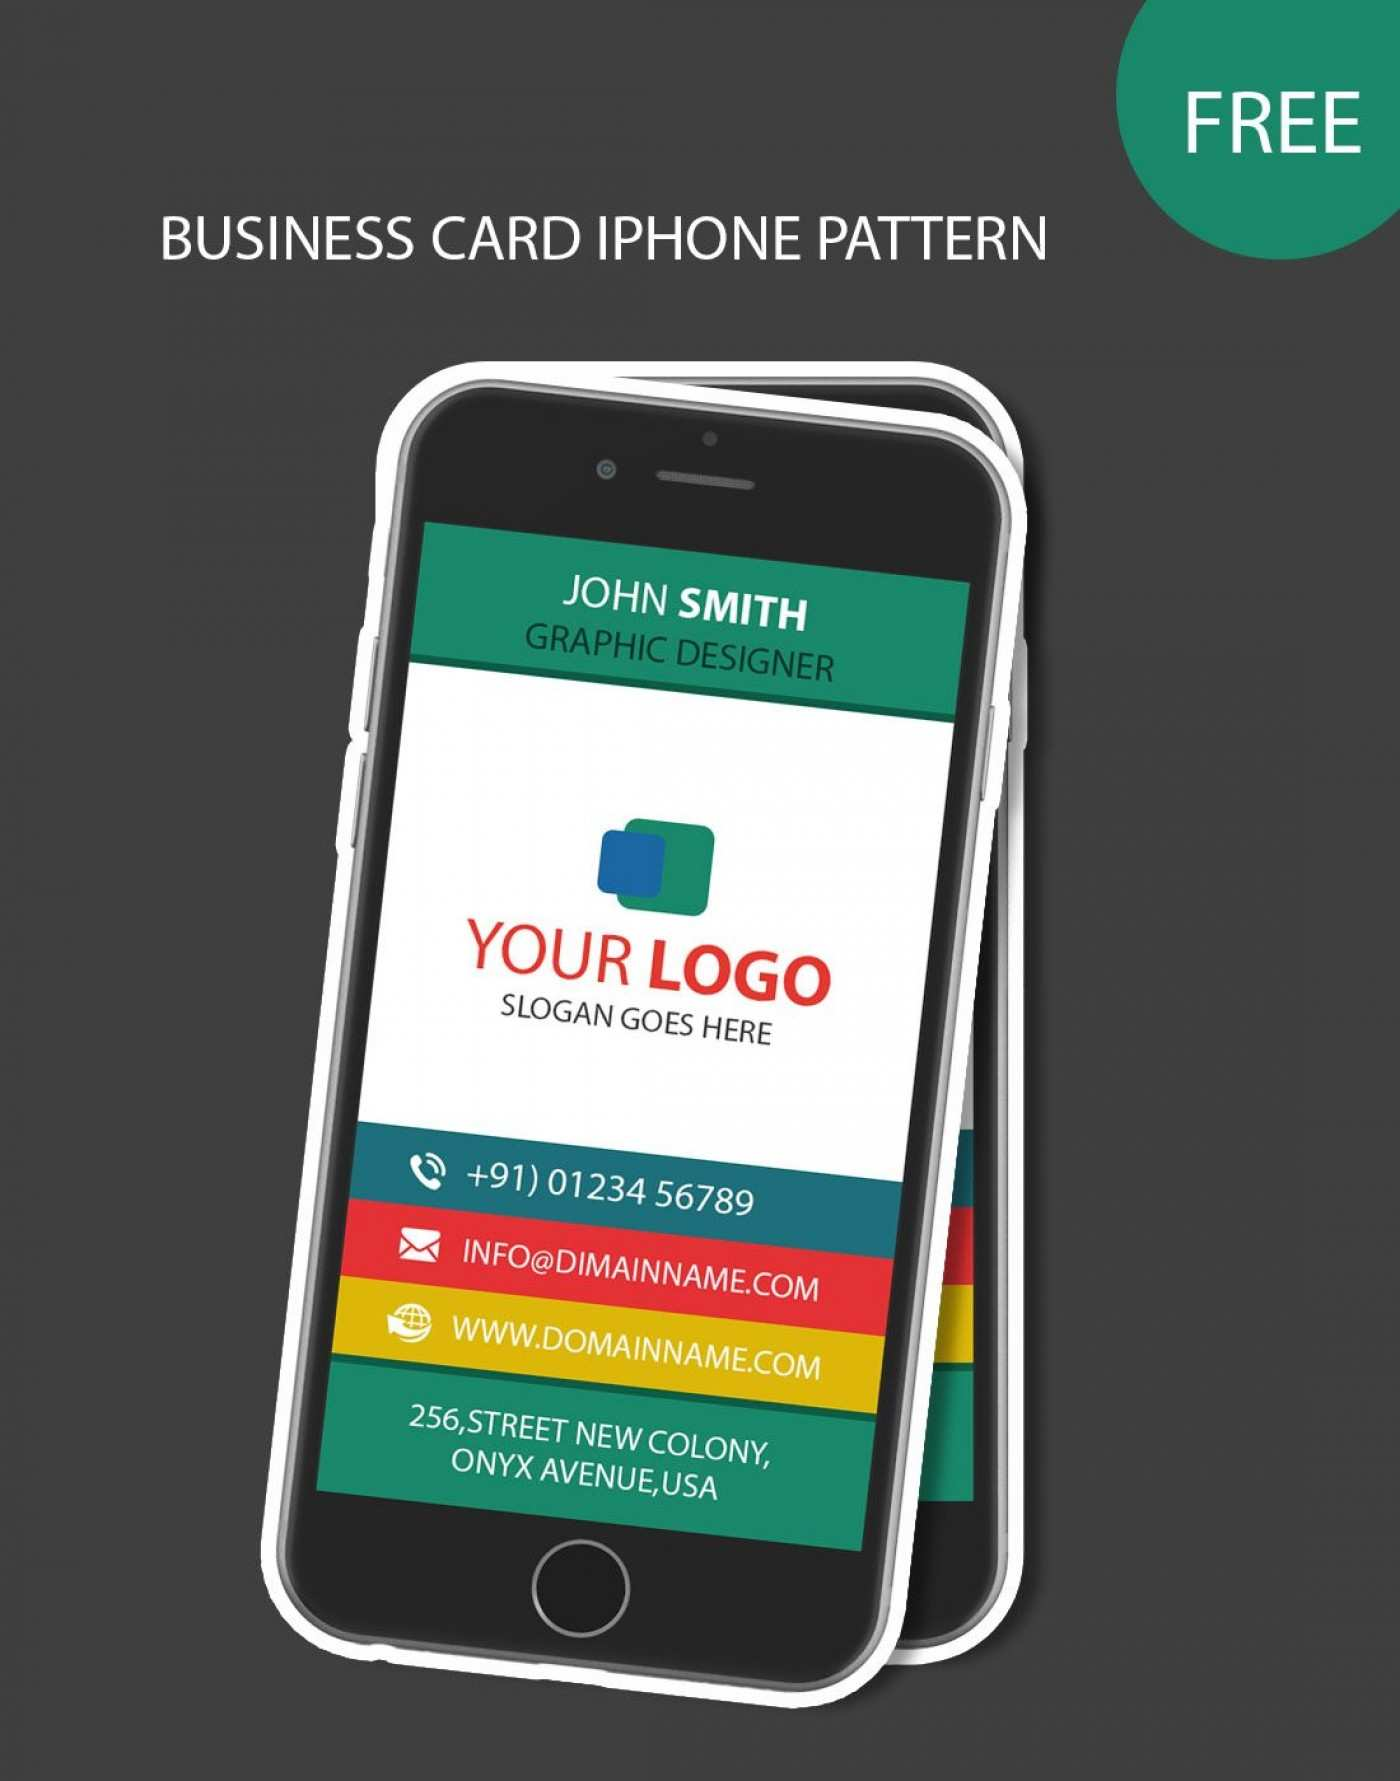 34 Creating Iphone Business Card Template Free Download For Free for Iphone Business Card Template Free Download